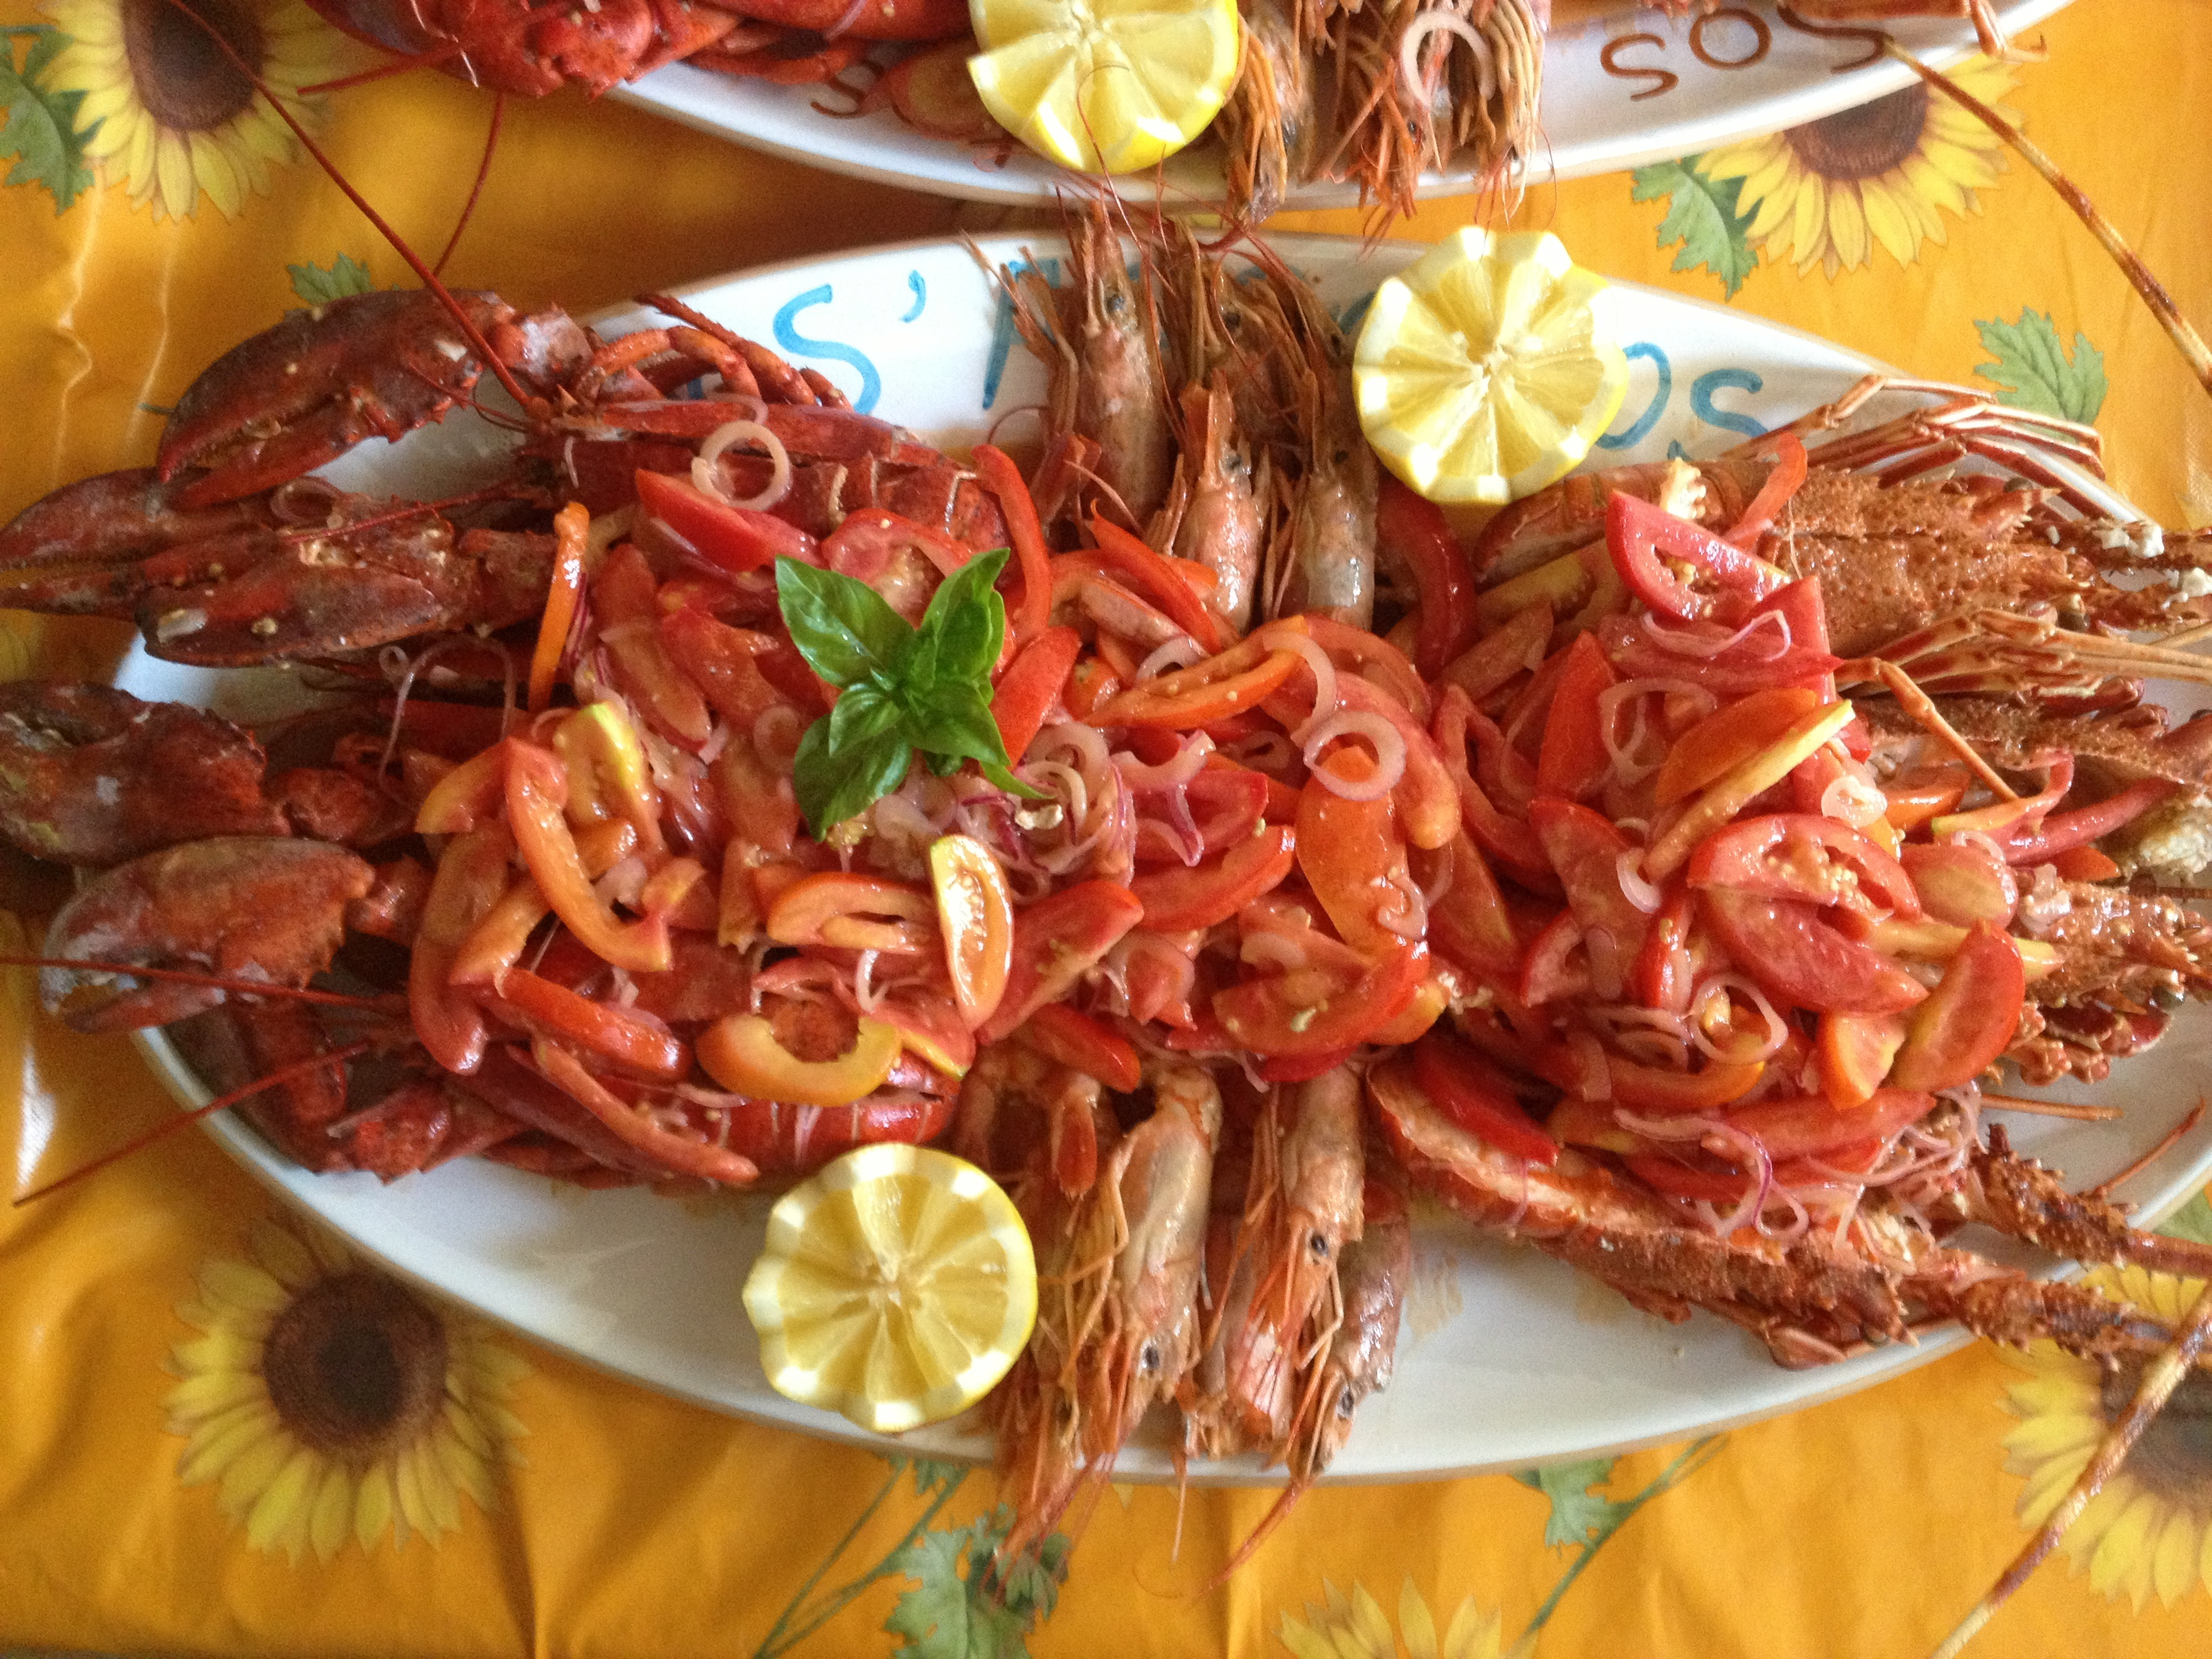 Most Popular Seafood food in Siniscola, Province of Nuoro, Italy